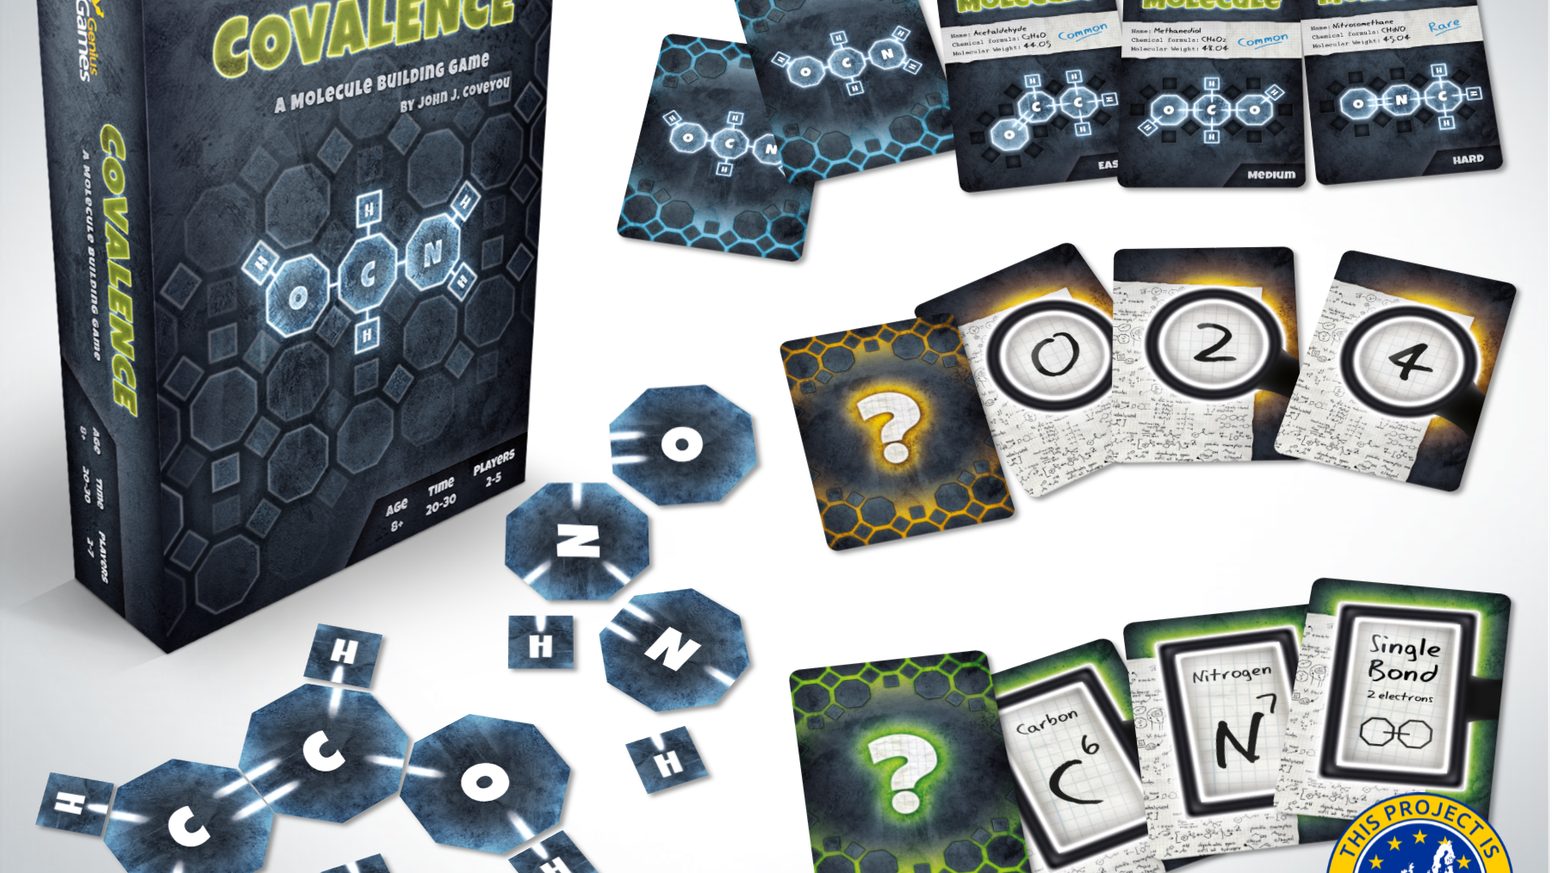 A Puzzle-Style, Cooperative, Chemistry Game for 2-4+ Players, where you must deduce the structure of secret molecules from clues given!